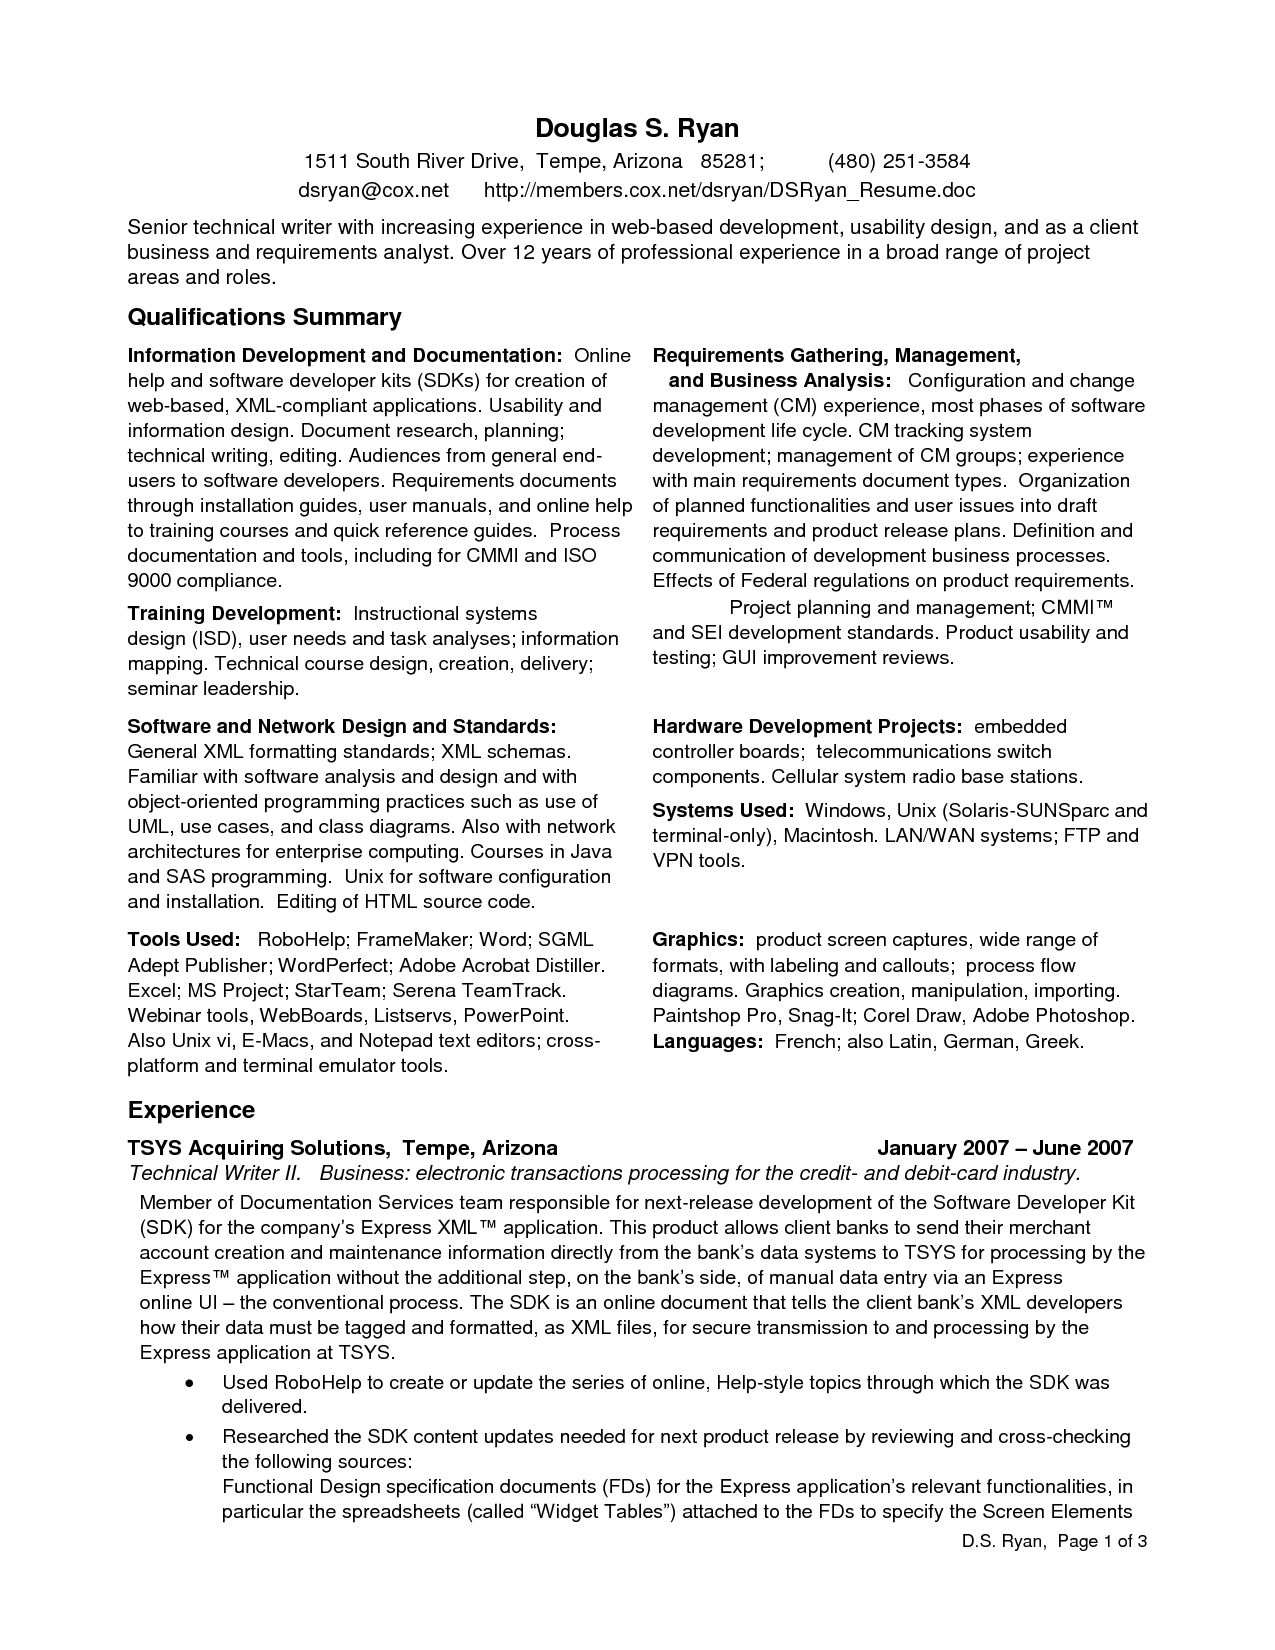 Analyst Resume Samples For Quality Assurance Mobile Apps Data